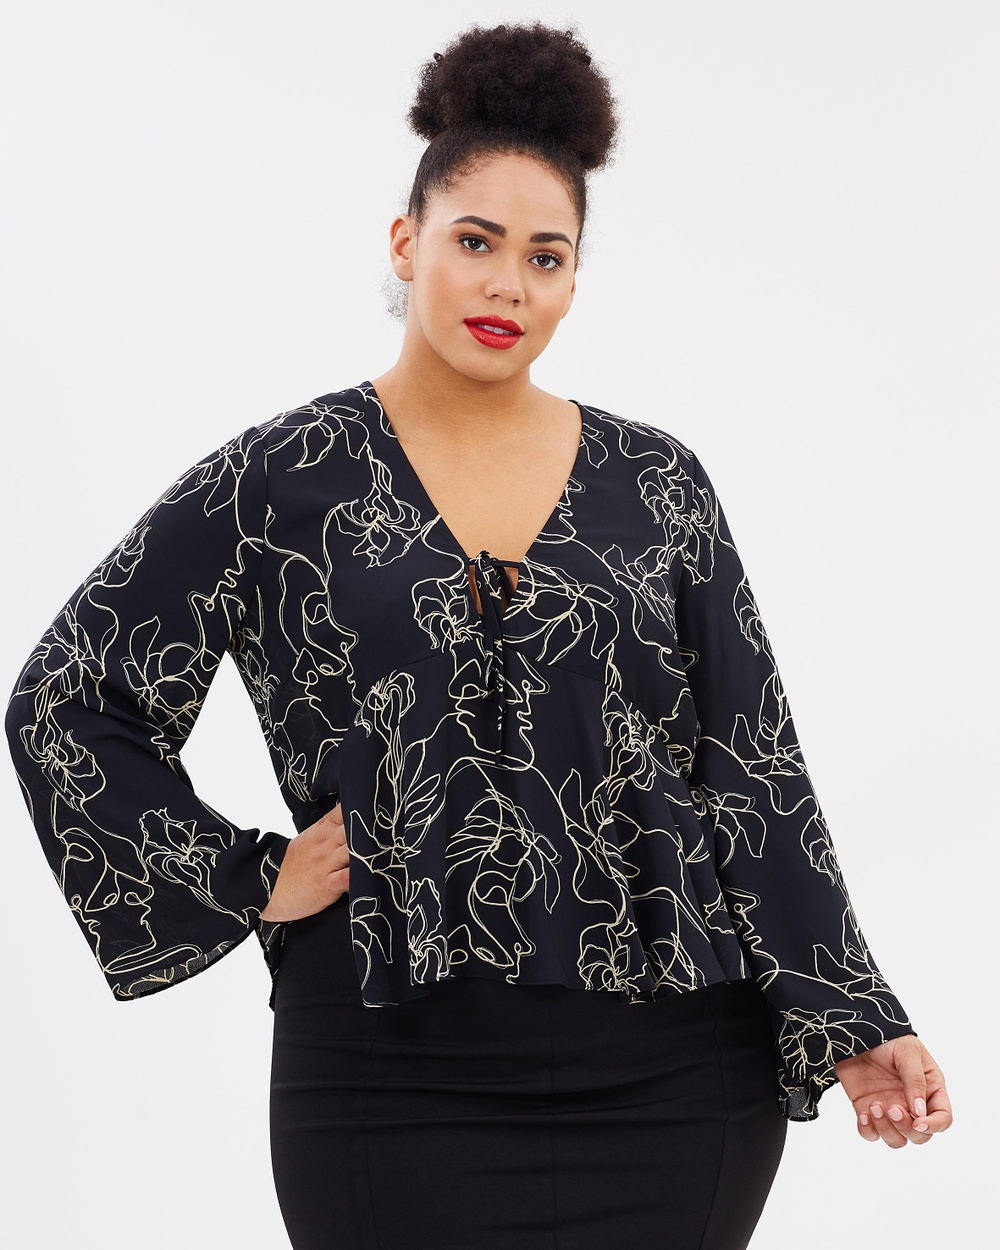 Atmos & Here Curvy ICONIC EXCLUSIVE Milan Kimono Sleeve Top Tops In Two Minds ICONIC EXCLUSIVE Milan Kimono Sleeve Top